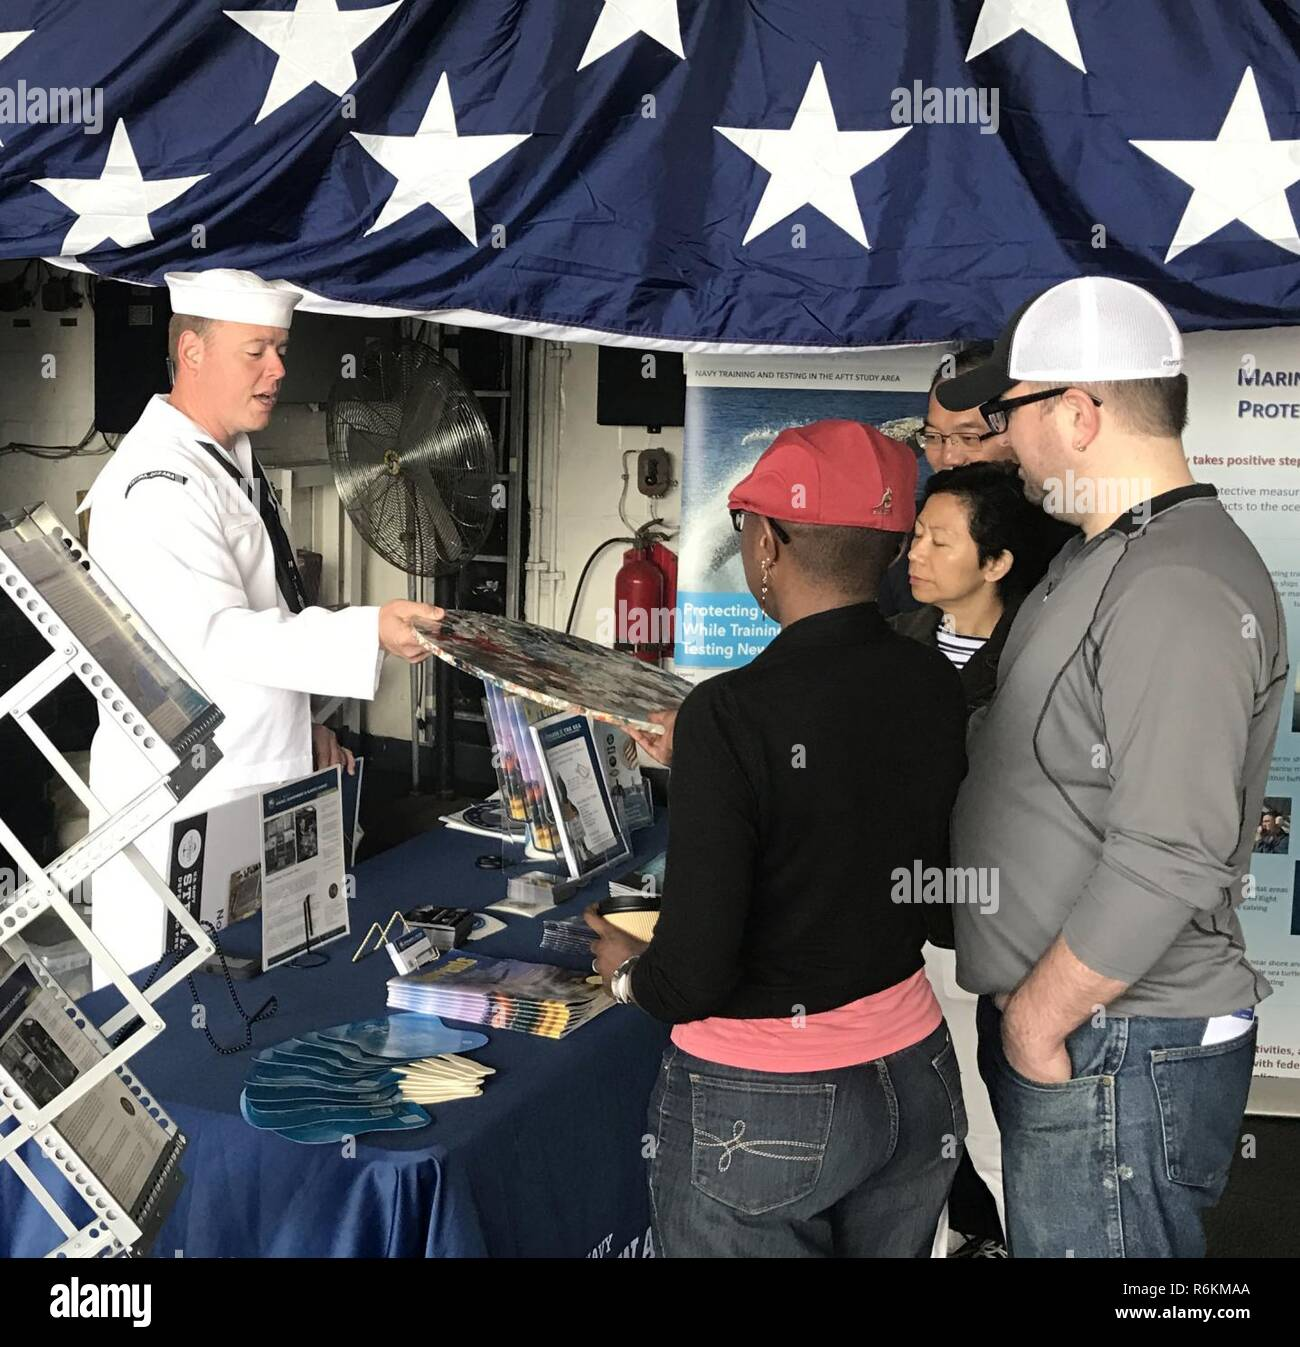 """NEW YORK (May 28, 2017) Mass Communication Specialist 1st Class J.R. Peregrino, assigned to U.S. Fleet Forces Command, discusses plastic waste processing with visitors at the """"Stewards of the Sea: Defending Freedom, Protecting the Environment"""" exhibit aboard the guided-missile cruiser USS Monterey (CG 61) at the Brooklyn Cruise Terminals during Fleet Week New York. The Navy employs every means available to mitigate the potential environmental effects of our activities without jeopardizing the safety of our Sailors or impacting our Navy readiness mission. Stock Photo"""